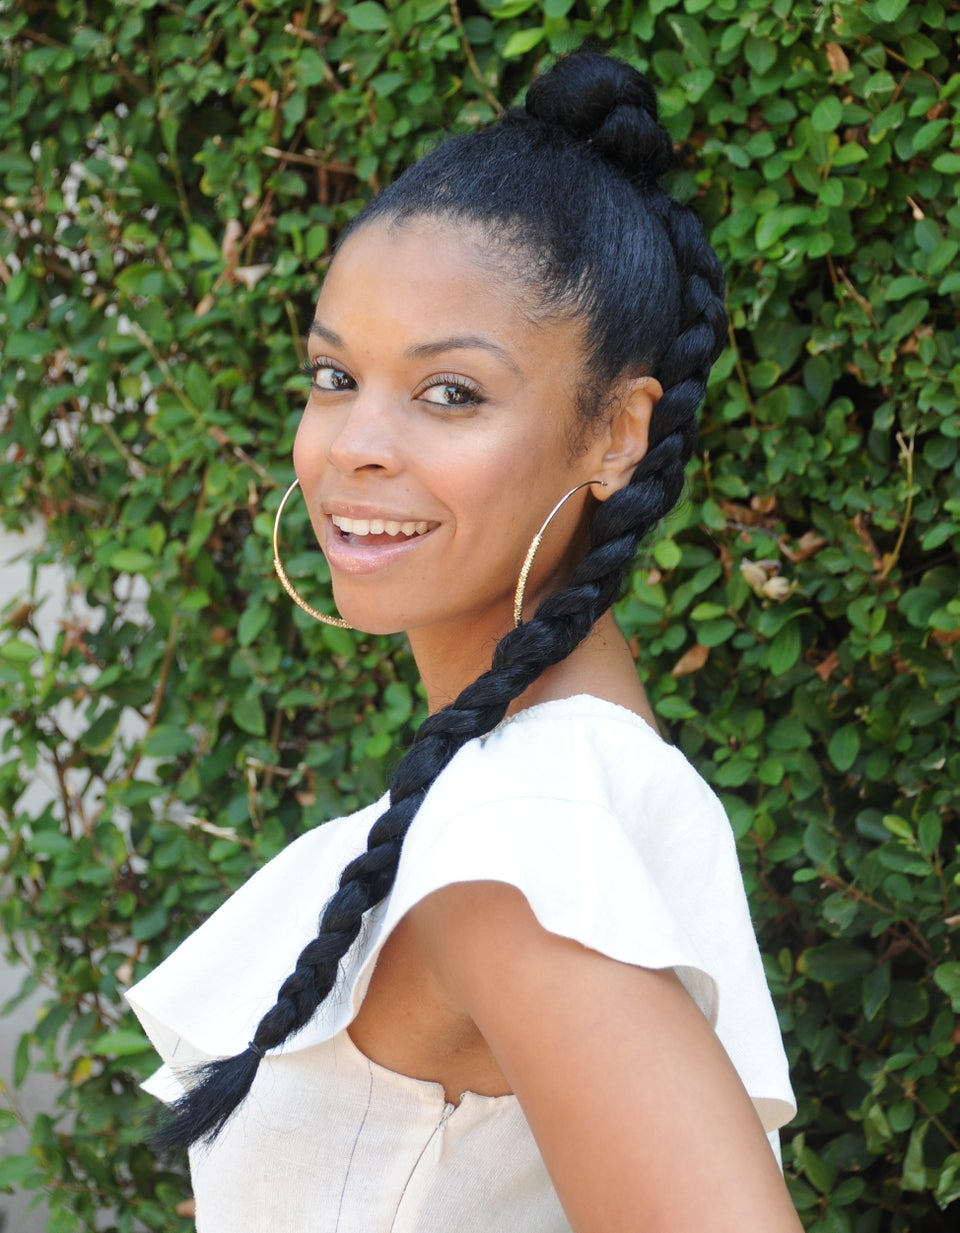 EXCLUSIVE: 'This Is Us' Star Susan Kelechi Watson Dishes On Beth And Randall's Decision To Foster, If Deja Will Stay